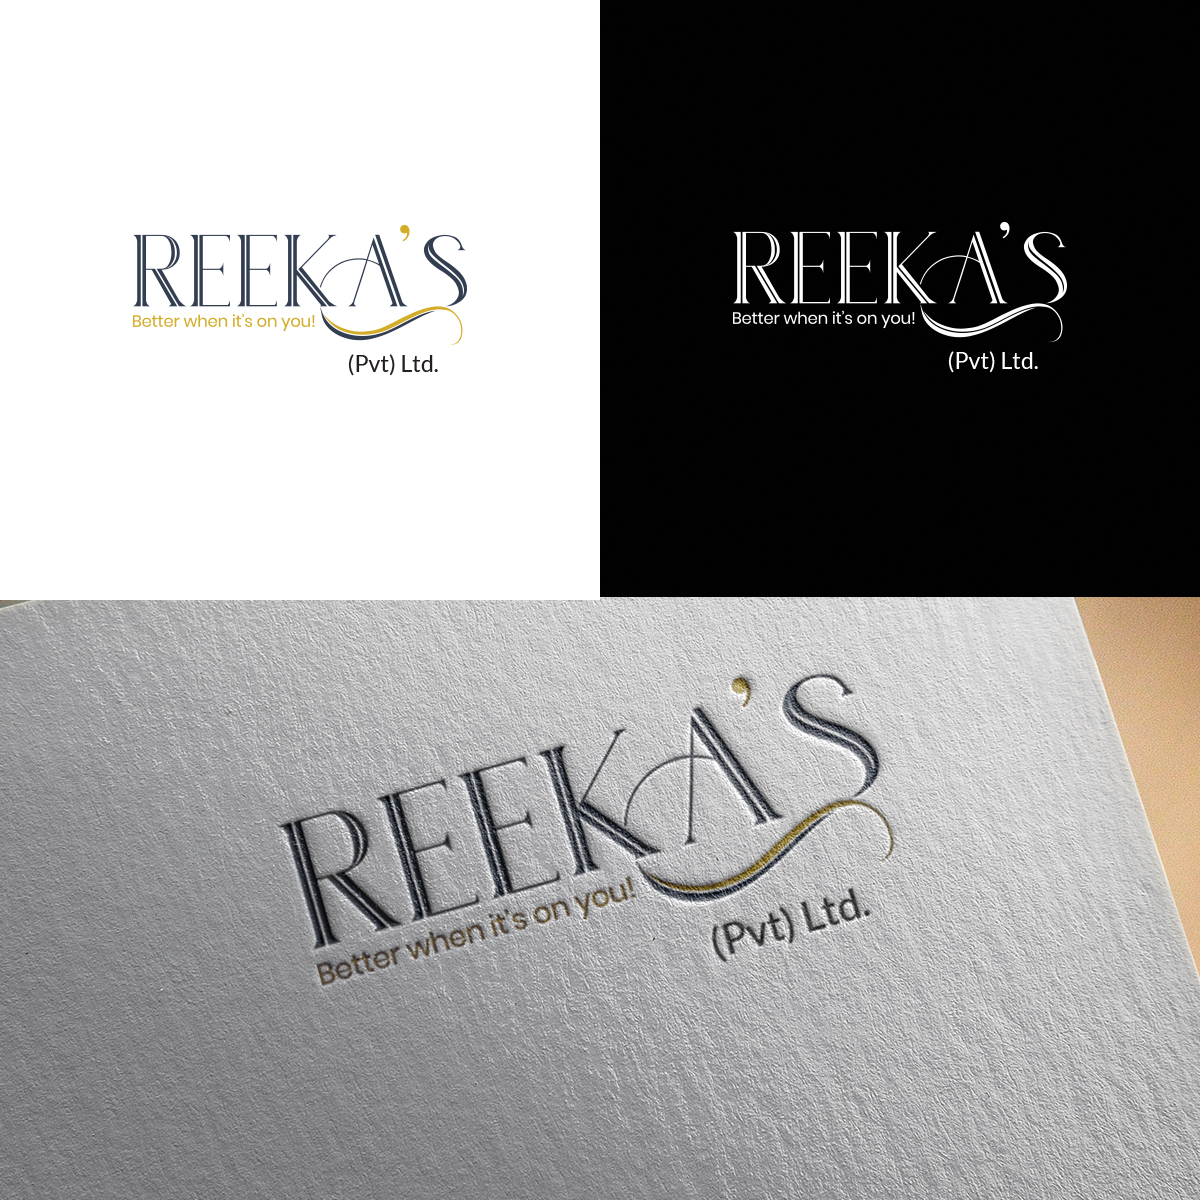 Boundless Technologies designed the logo for Reeka